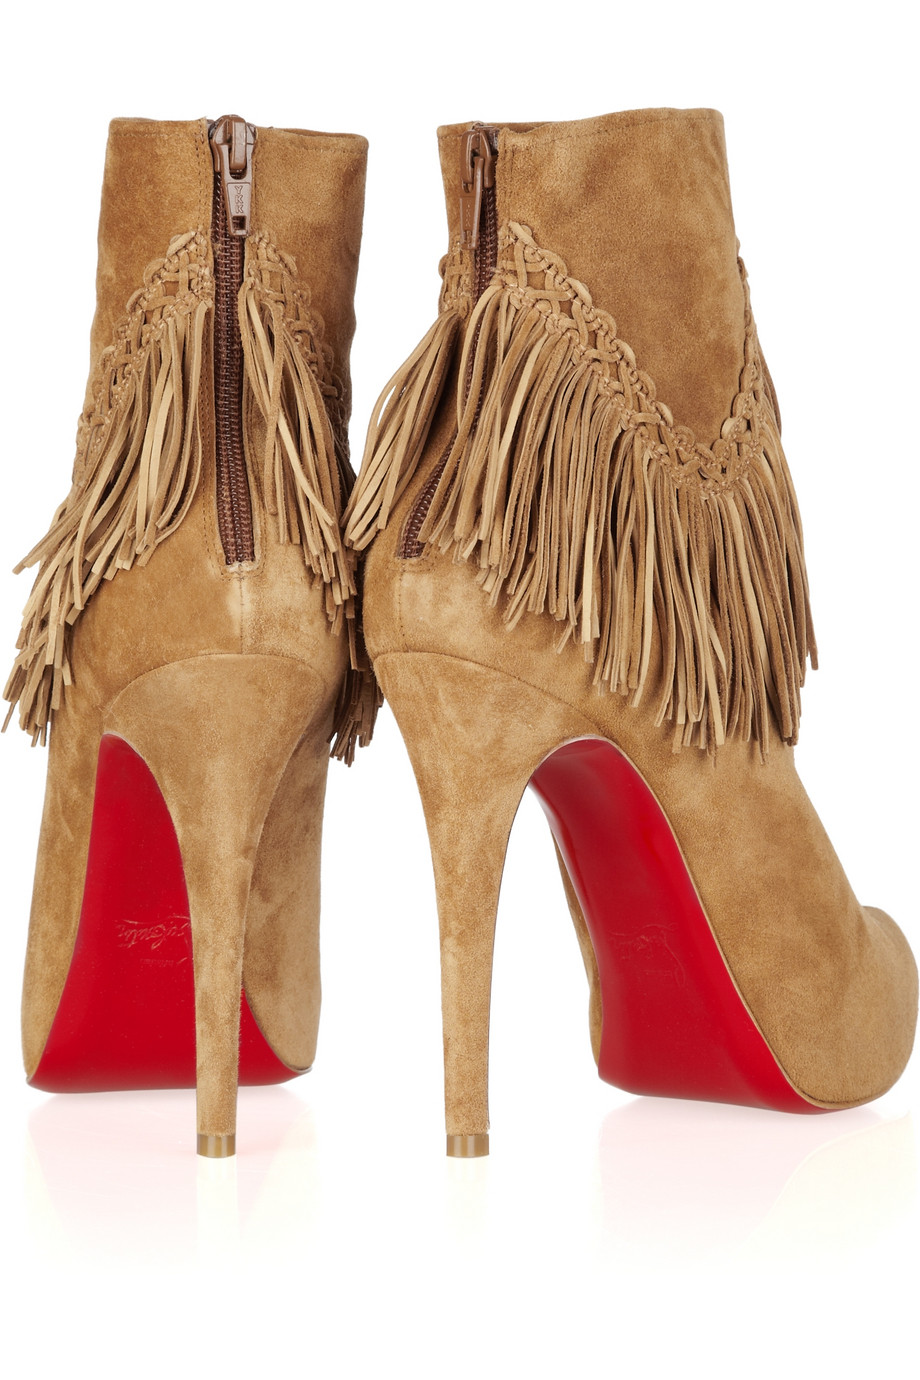 christian louboutin rom 120 fringed suede ankle boots